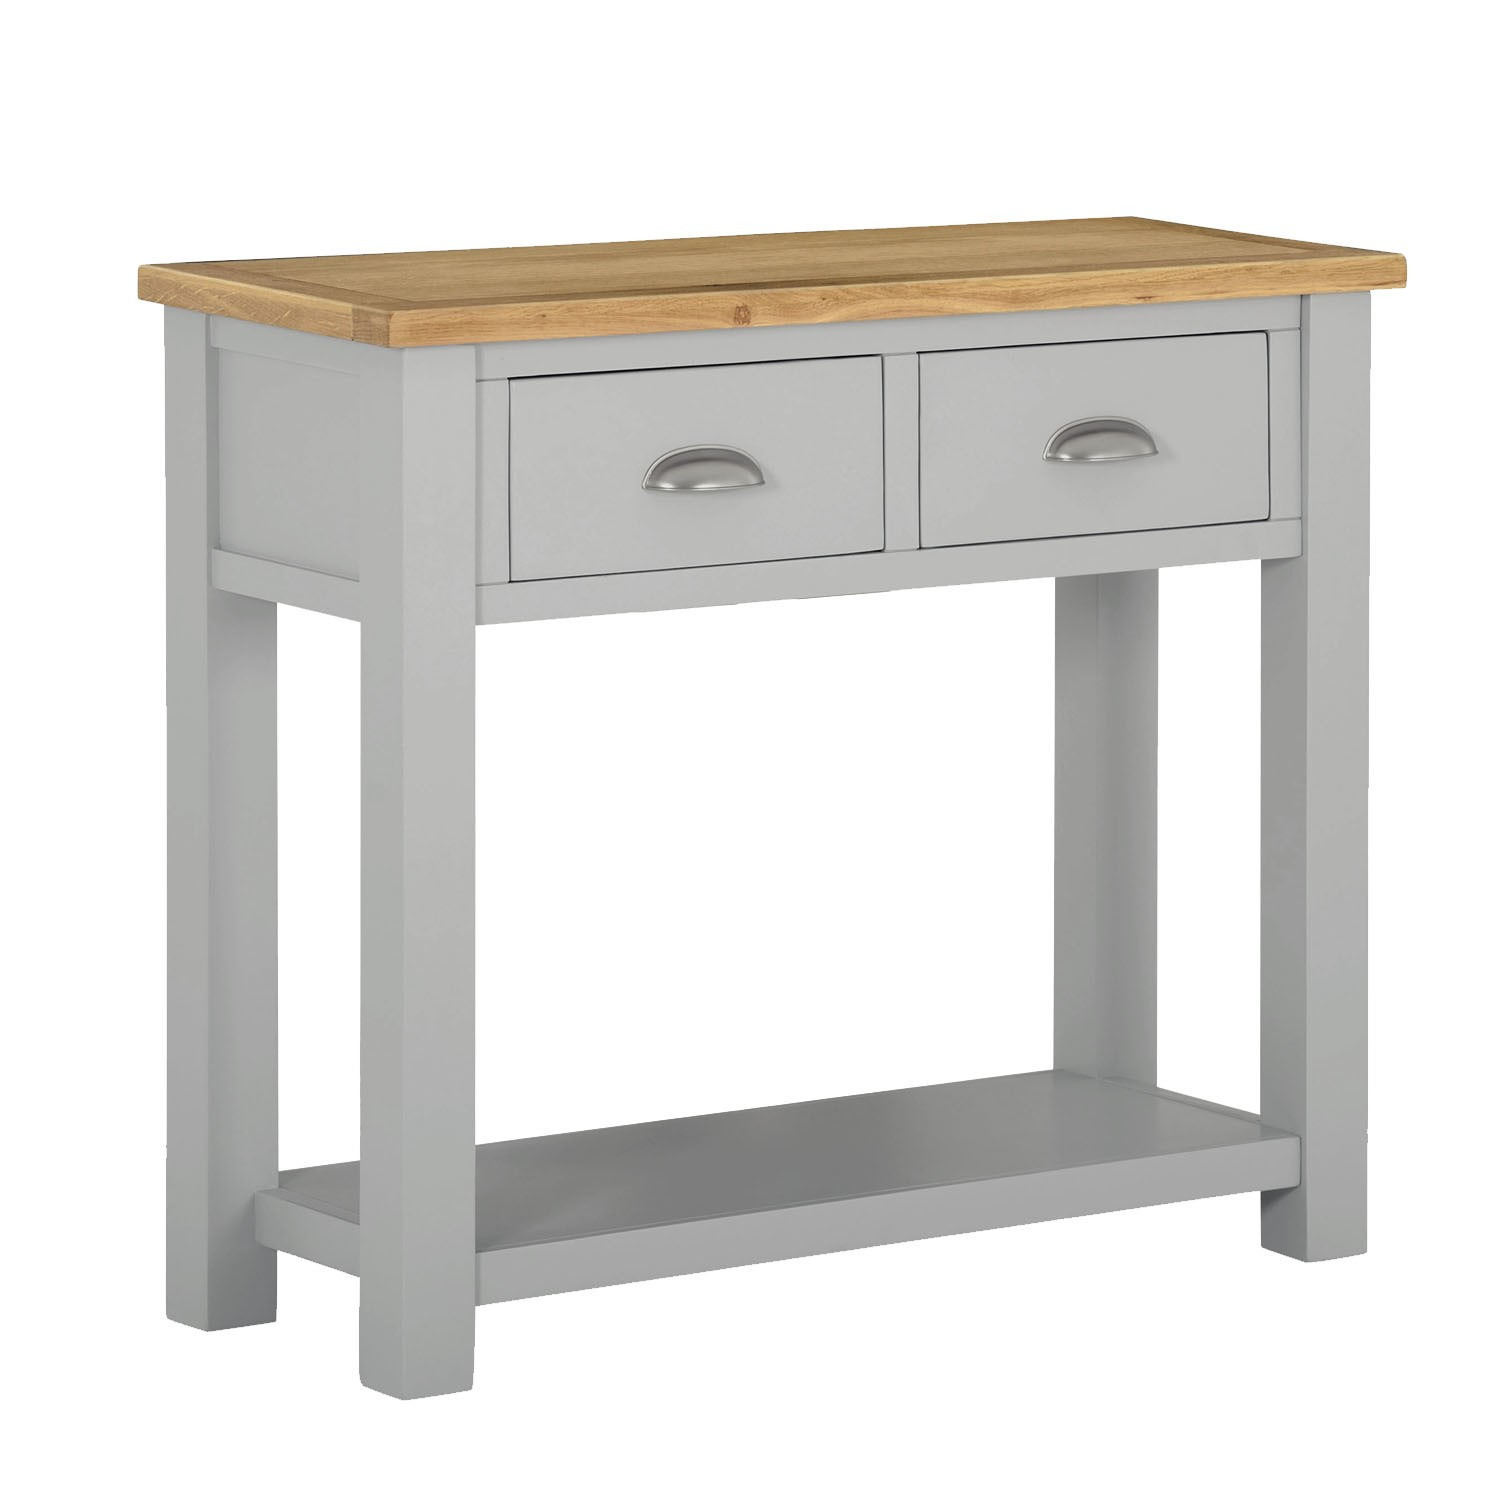 Hall and Console Tables Furniture123